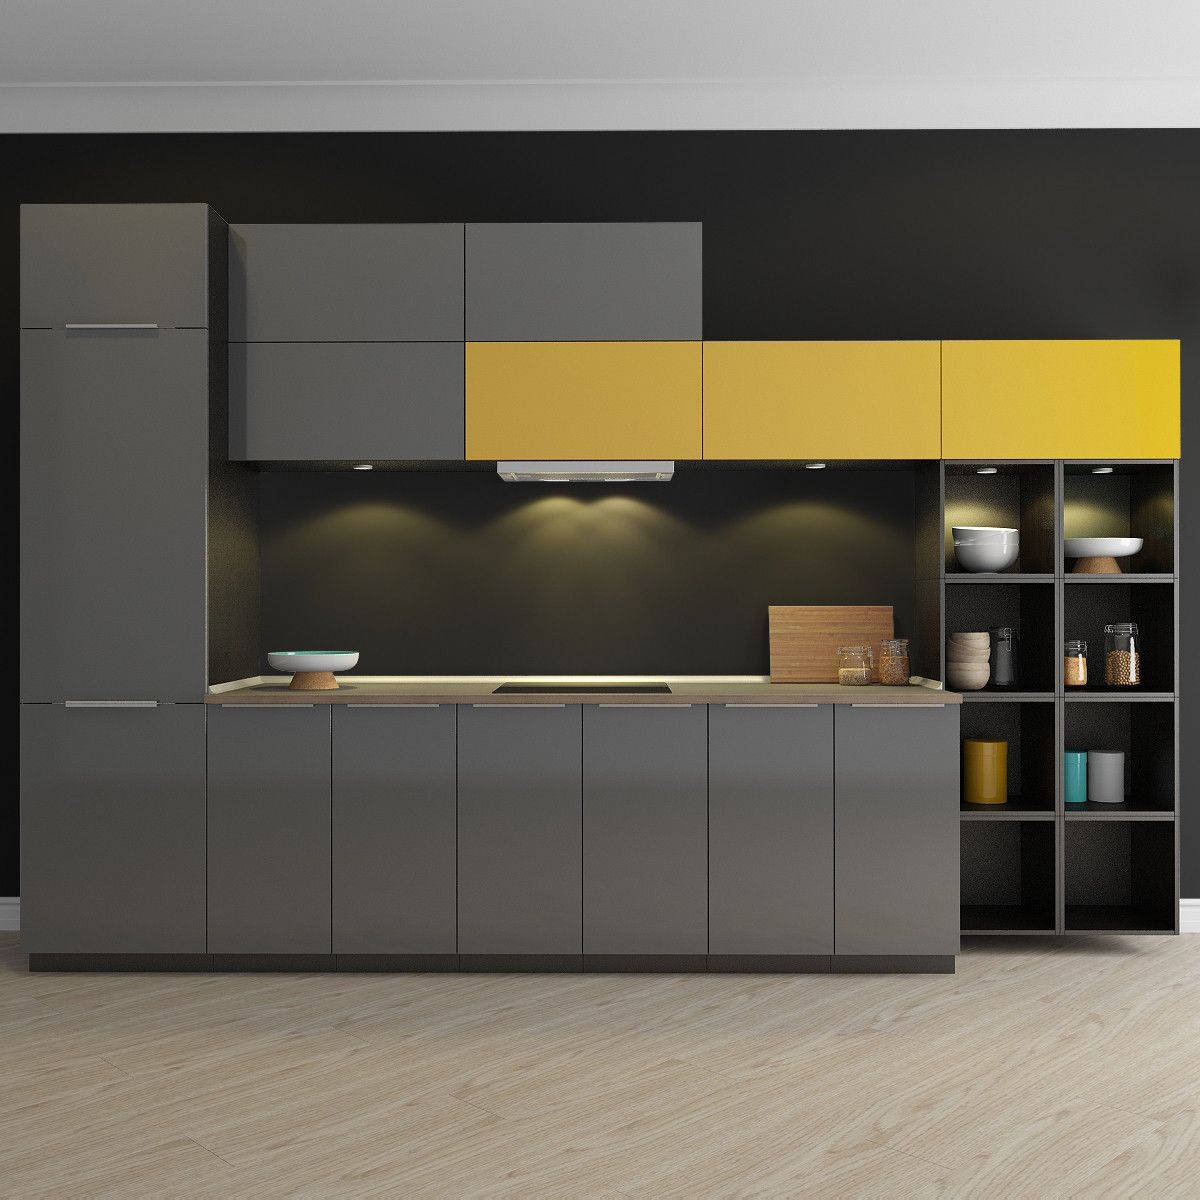 Kitchen Design 3d Model Kitchen Ringhult 3d Max 3d Model 廚房 Kitchen Design Kitchen